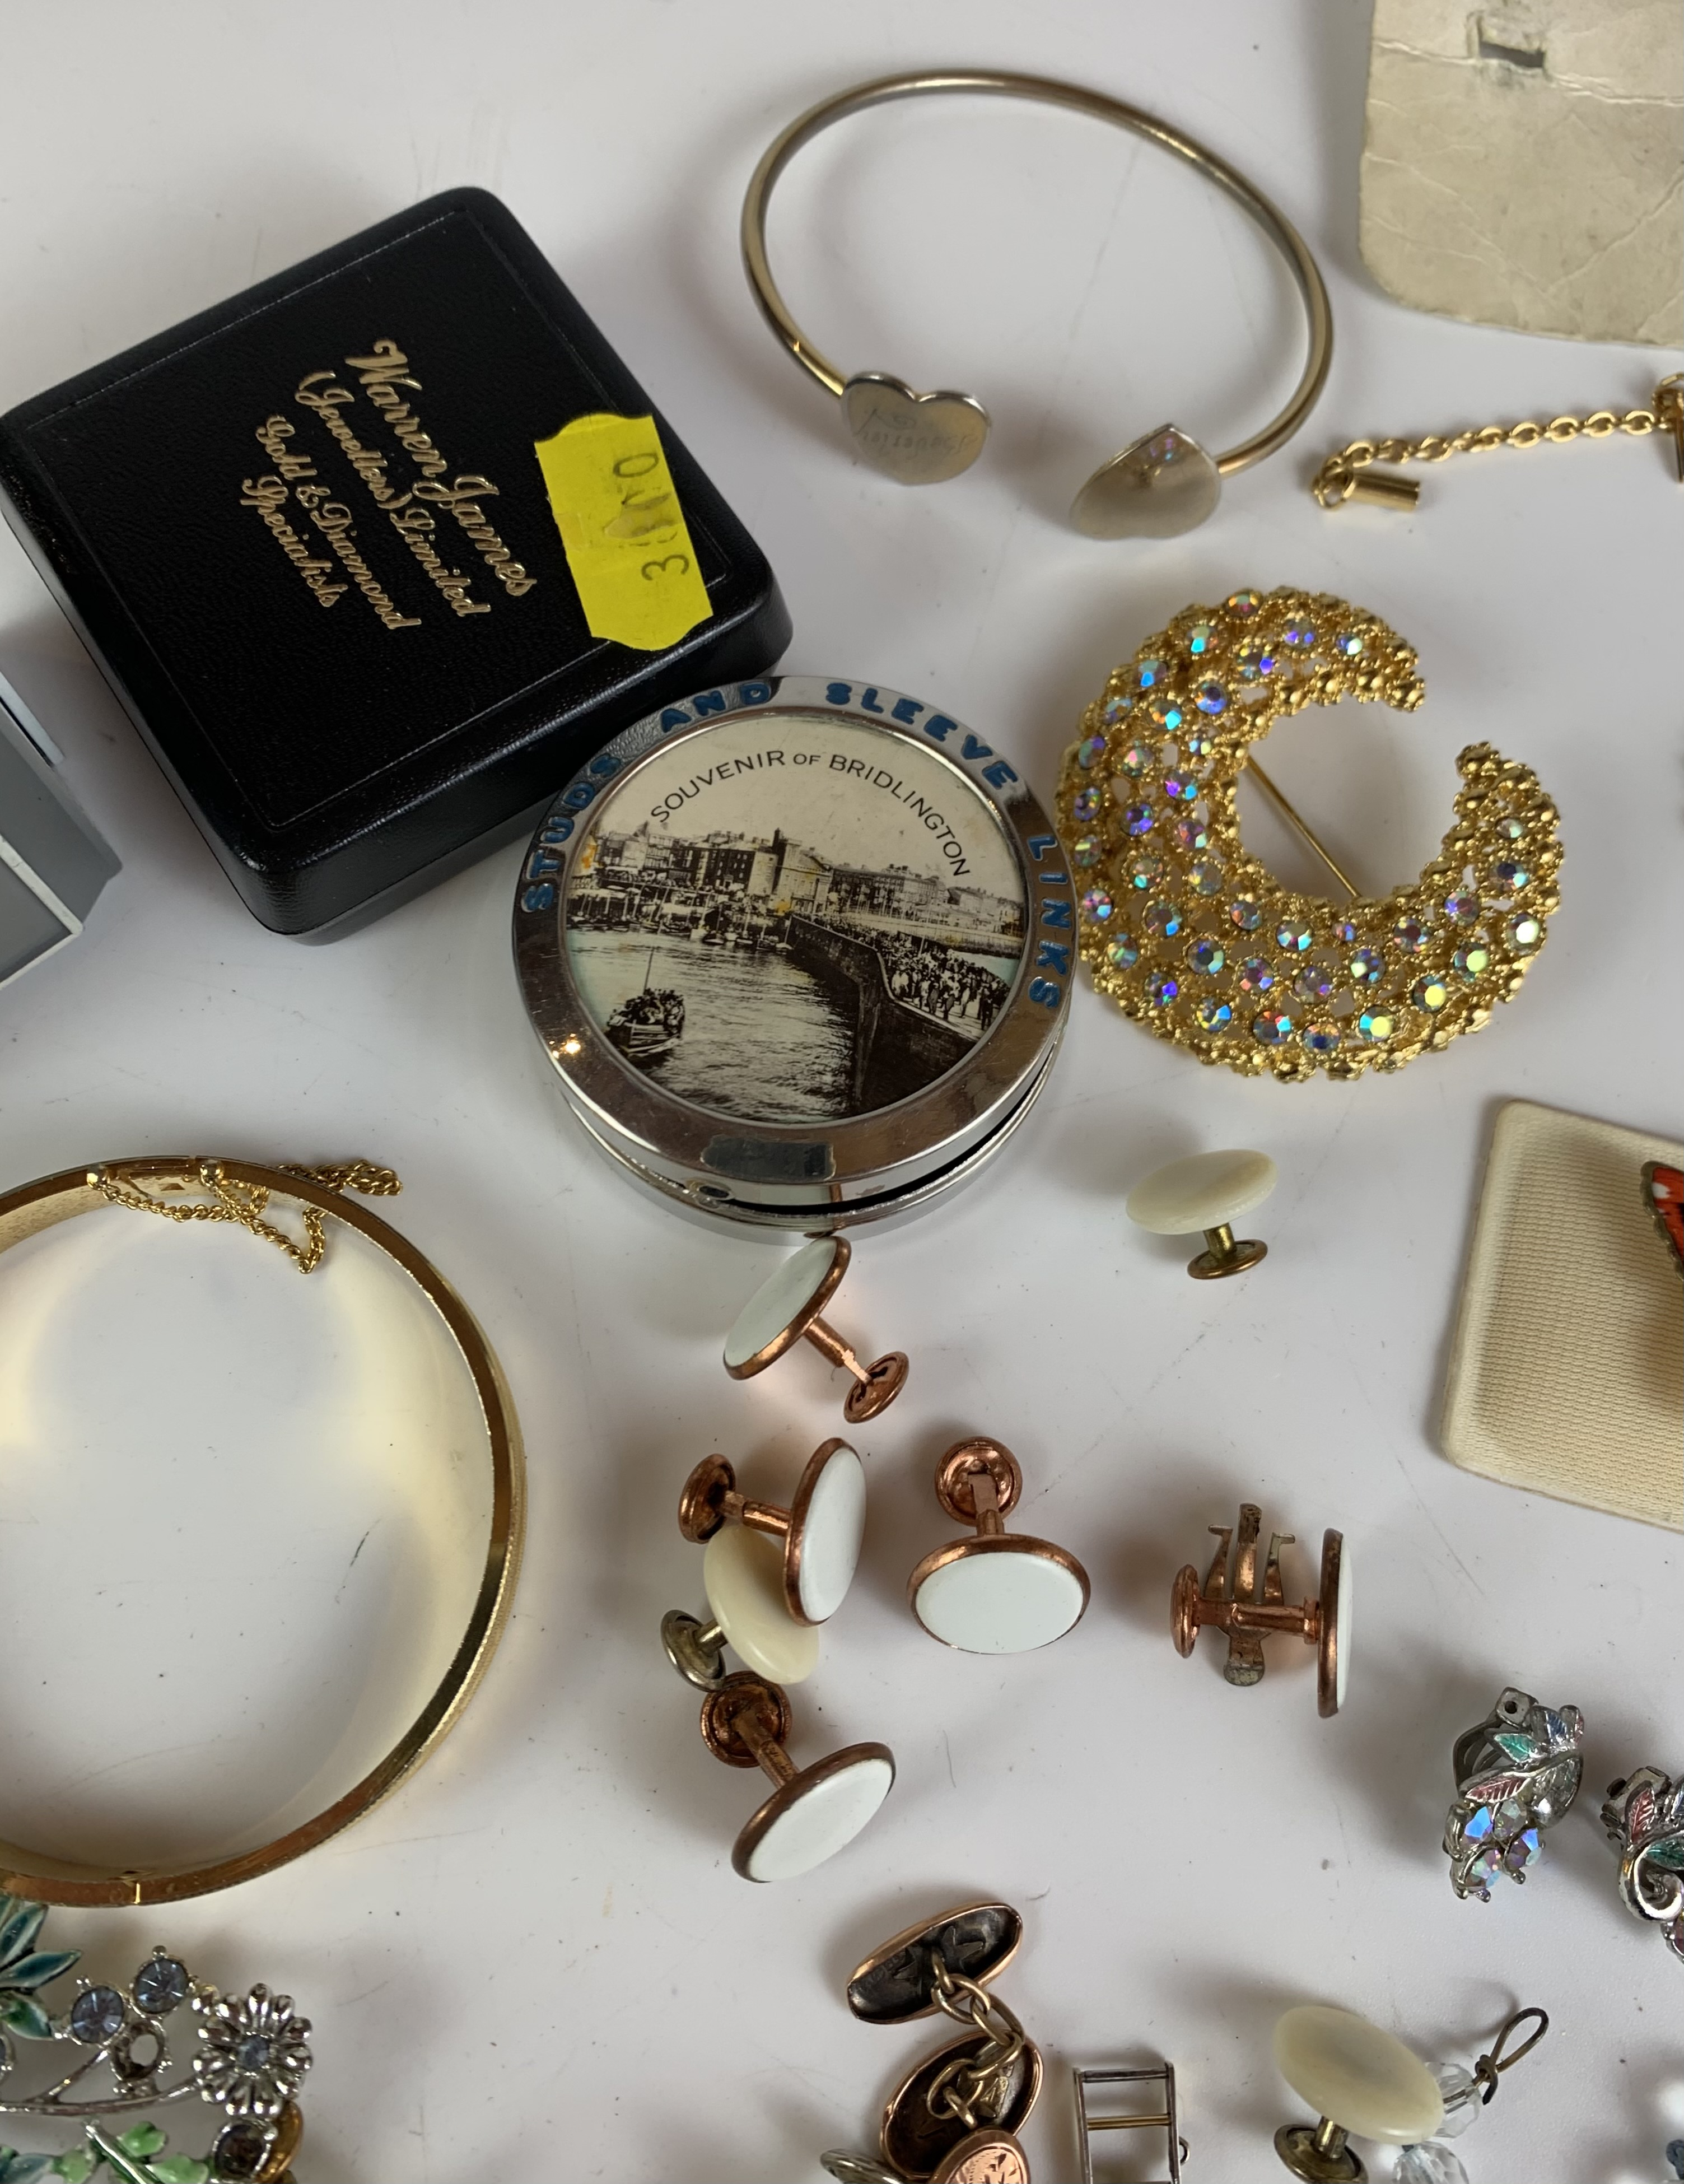 Large bag of assorted dress jewellery including necklaces, bracelets, brooches, earrings etc. - Image 8 of 11